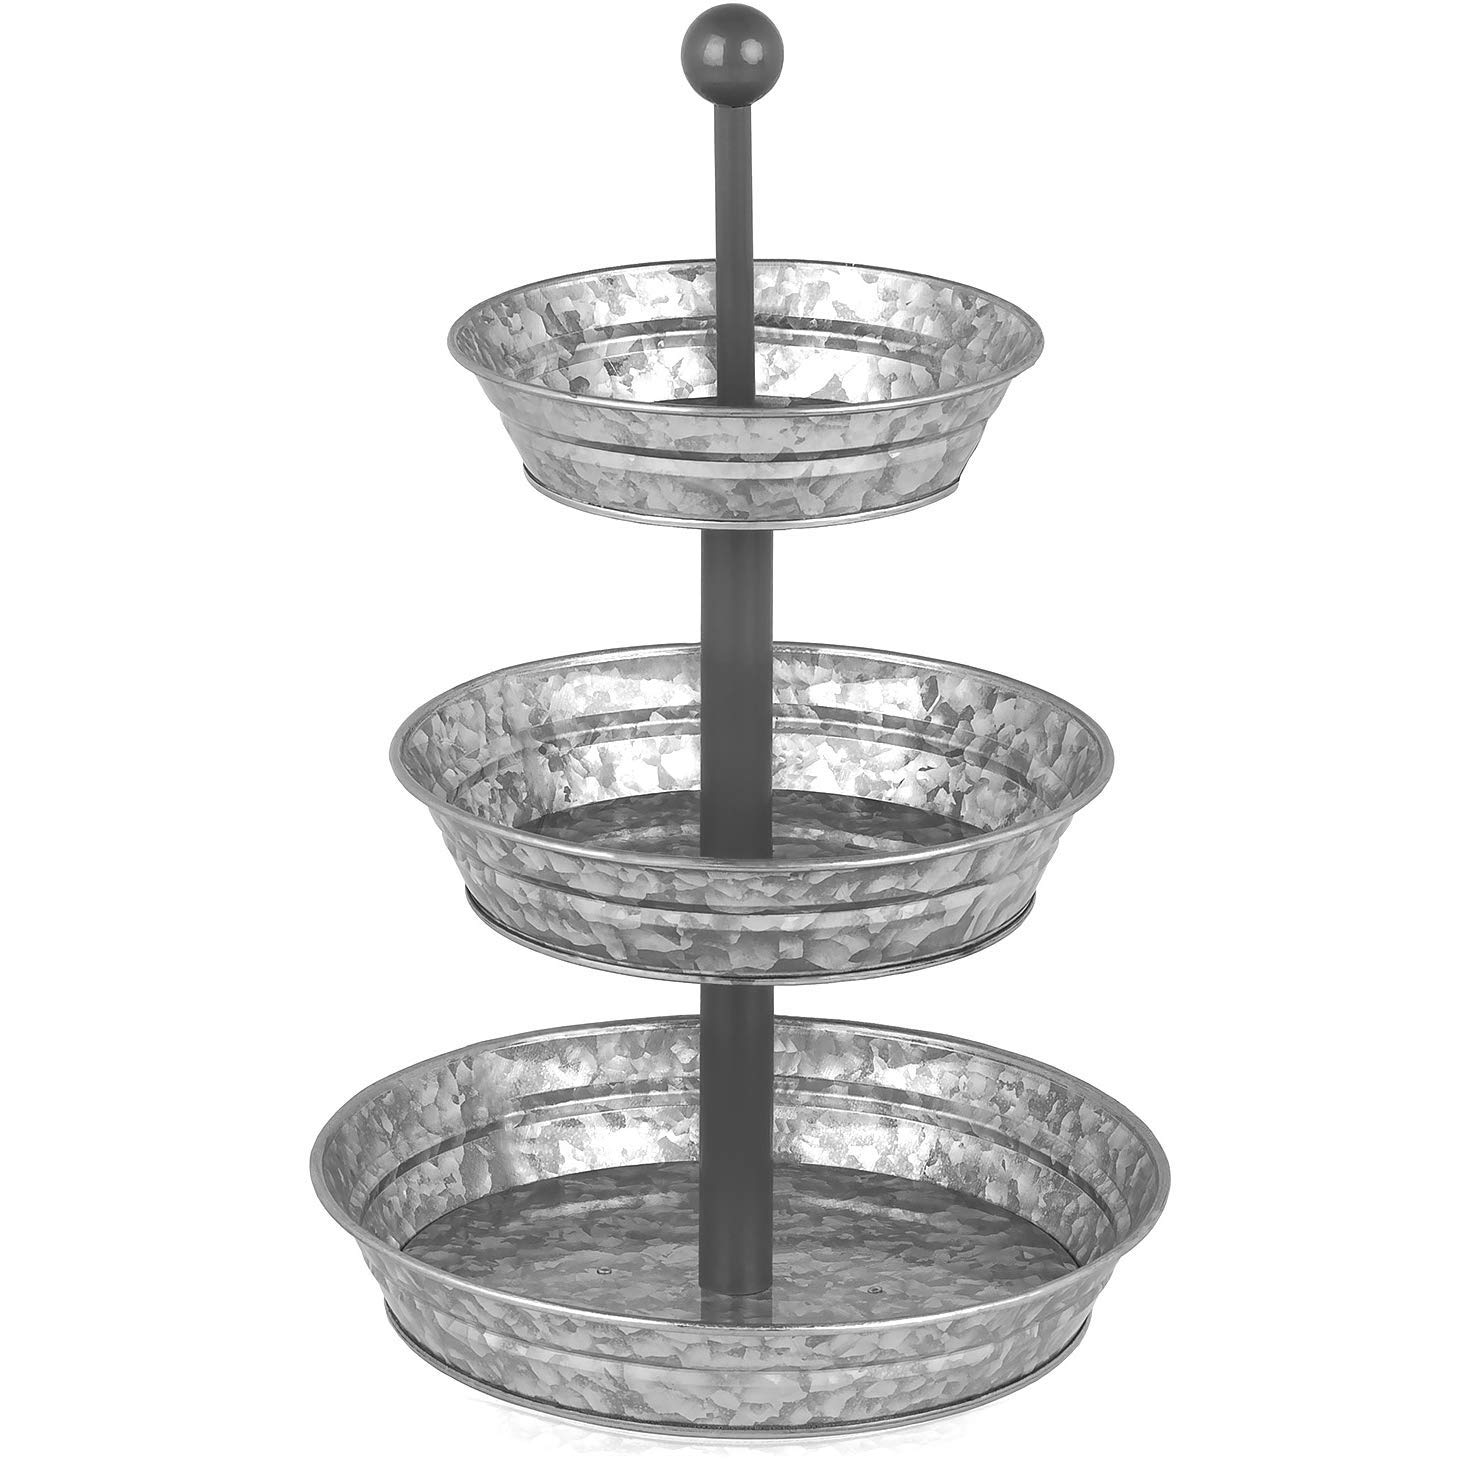 3 Tier Serving Tray - Galvanized, Rustic Metal Stand. Dessert, Cupcake, Fruit & P